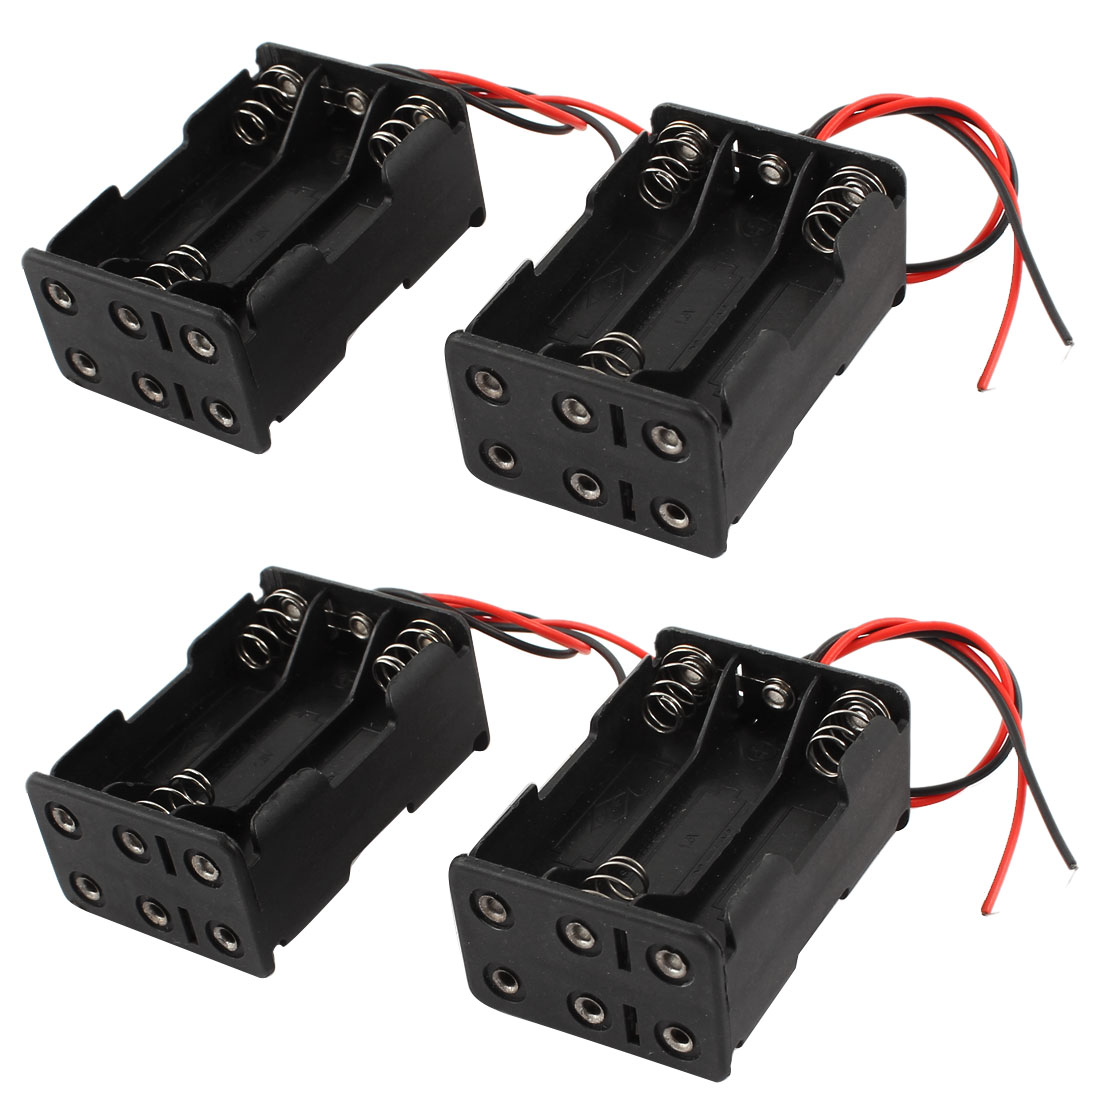 4 Pcs Wired 6 x 1.5V AAA Battery Holder Plastic Case Storage Box Black